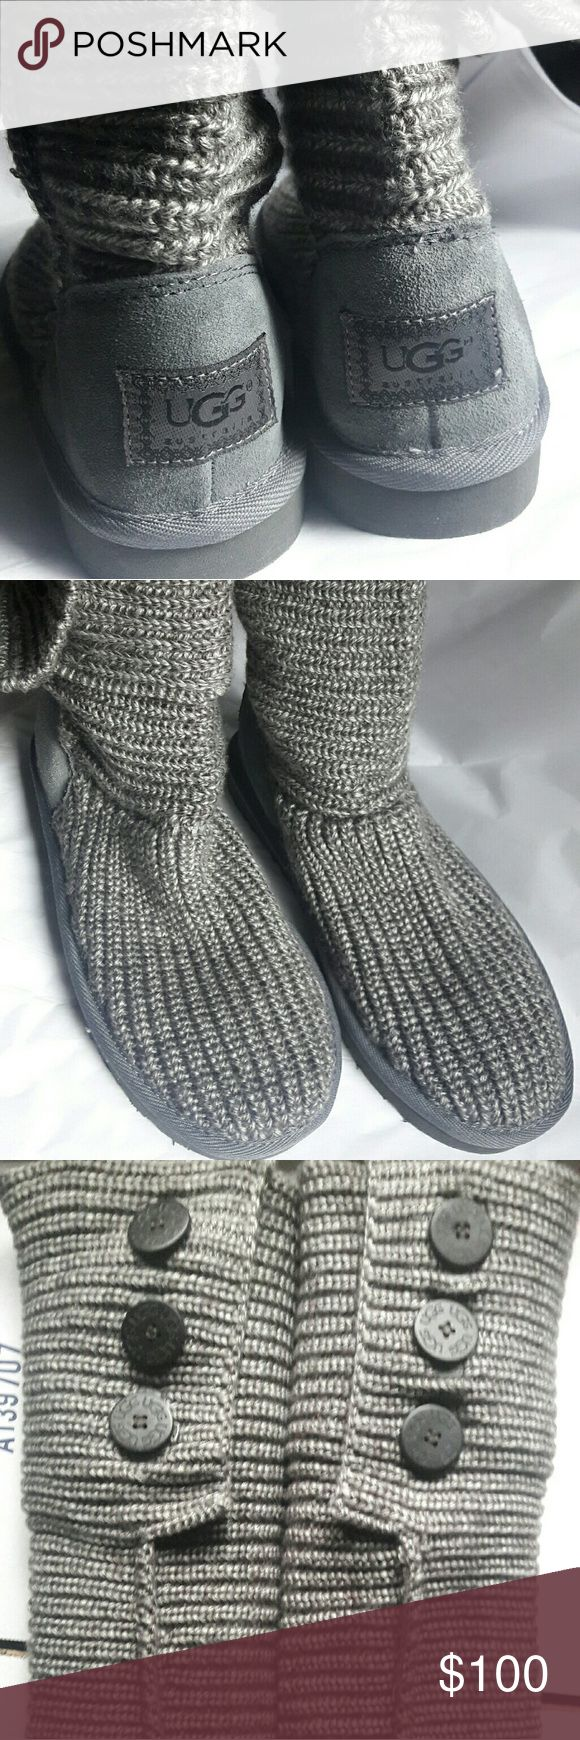 UGG Cardy Talk Knit Gray size 7 NWOT Classic Cardy with a slight stitching issues in pic, no box. UGG Shoes Winter & Rain Boots